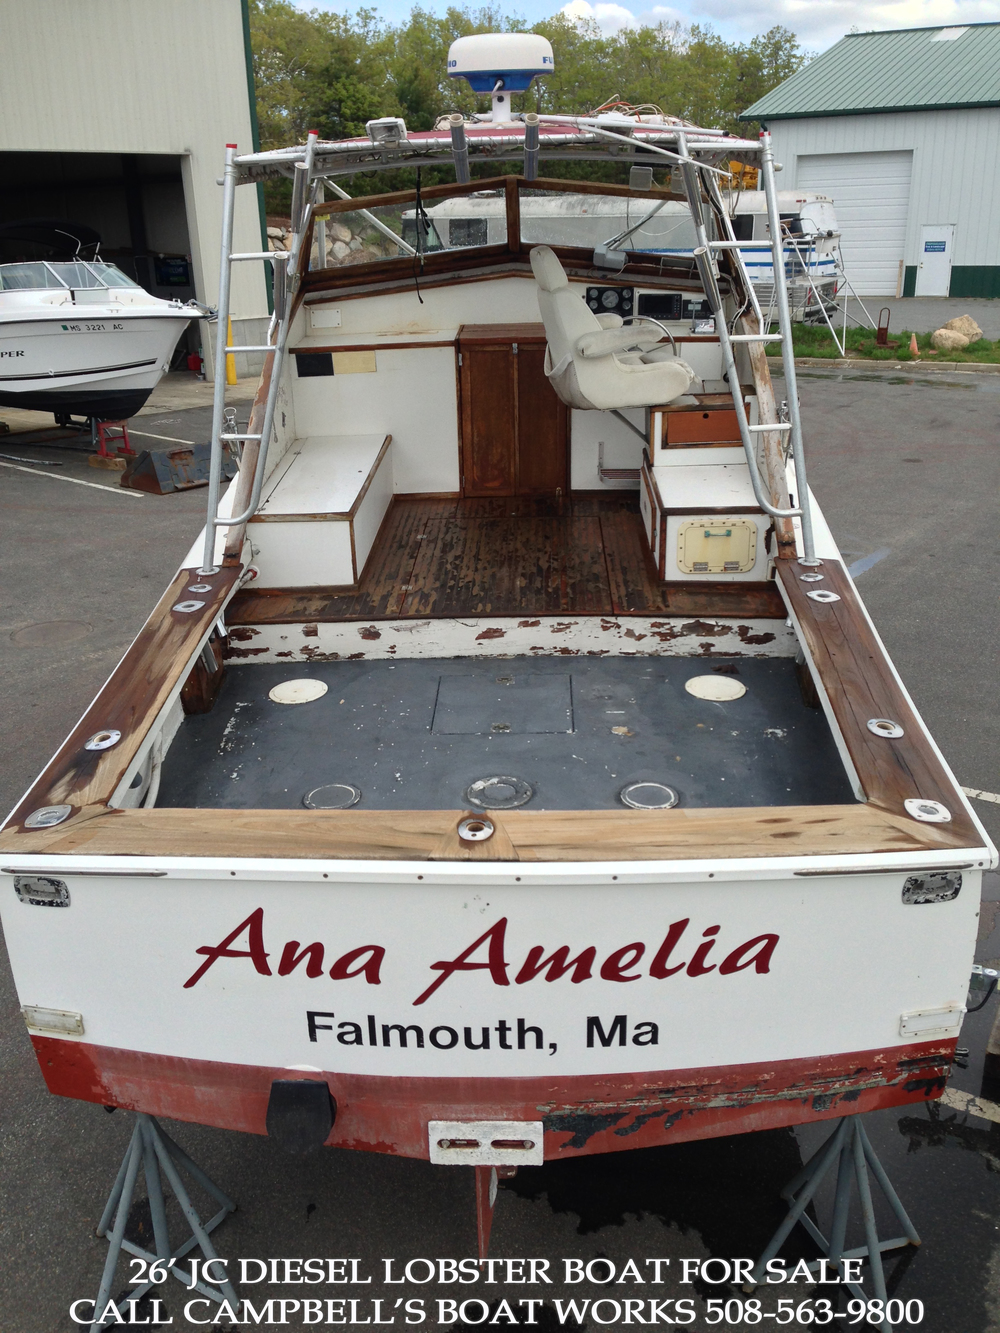 26' JC Downeast Lobster Boat For Sale.  Call us for more information or to come view this boat. 508-563-9800